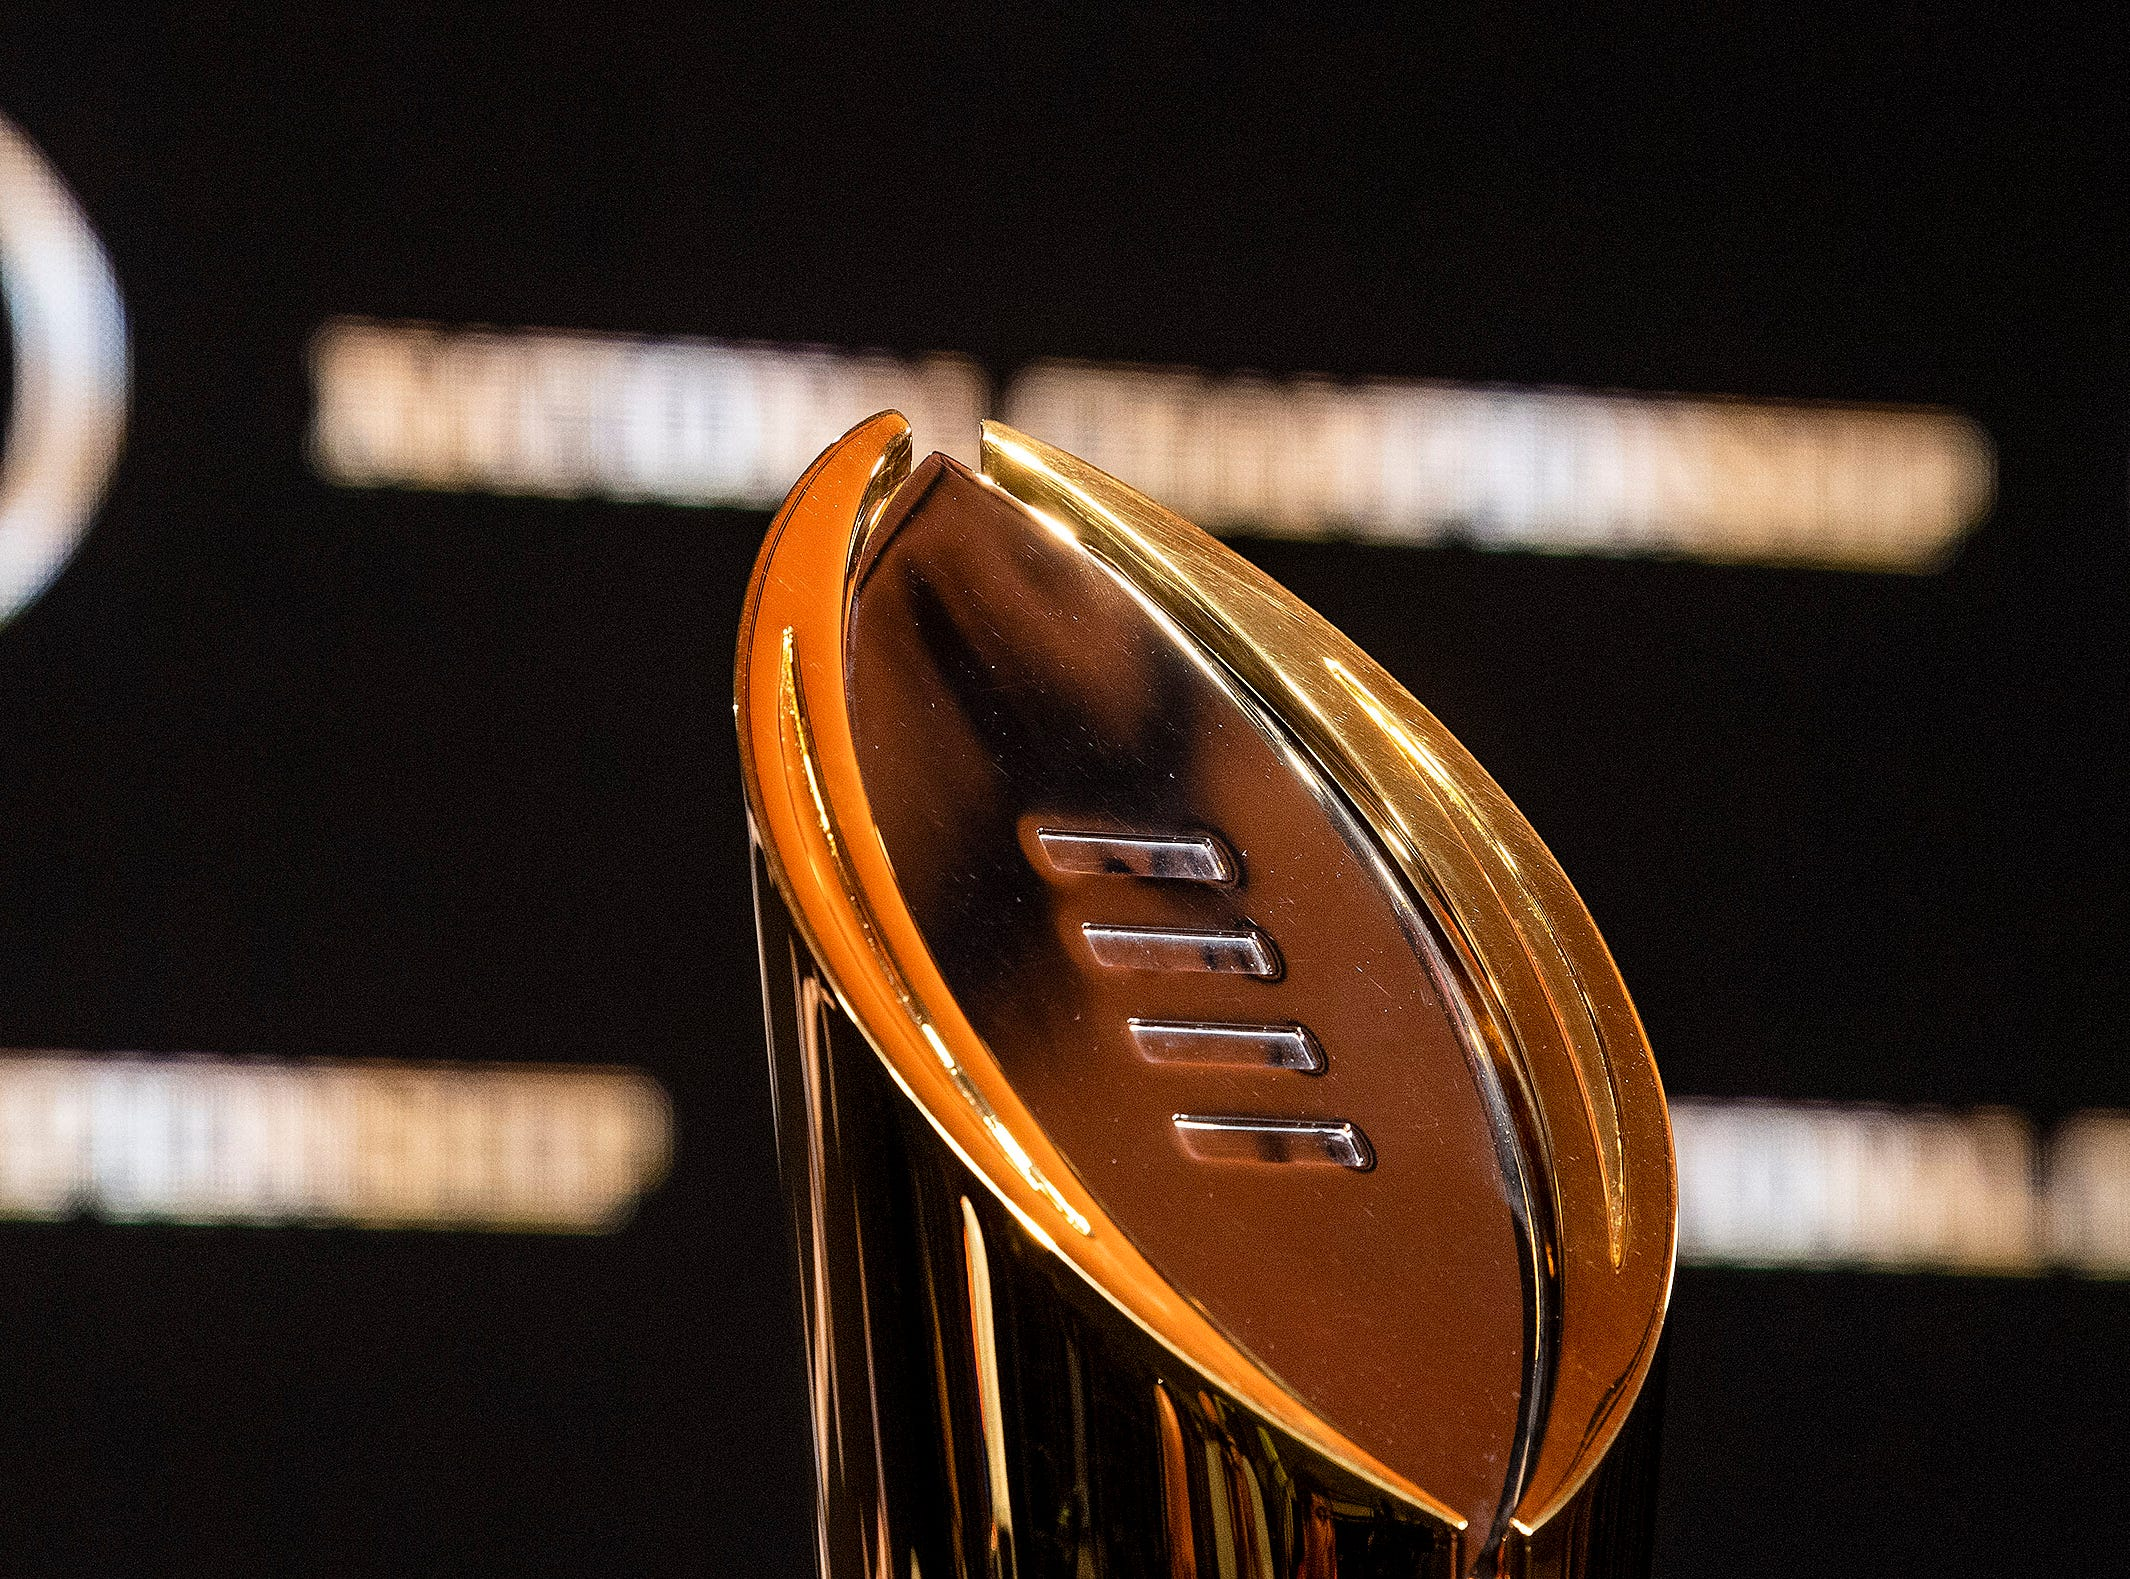 The National Championship Trophy is displayed during the College Football National Championship coaches press conference in San Jose, Ca., on Sunday January 6, 2019.